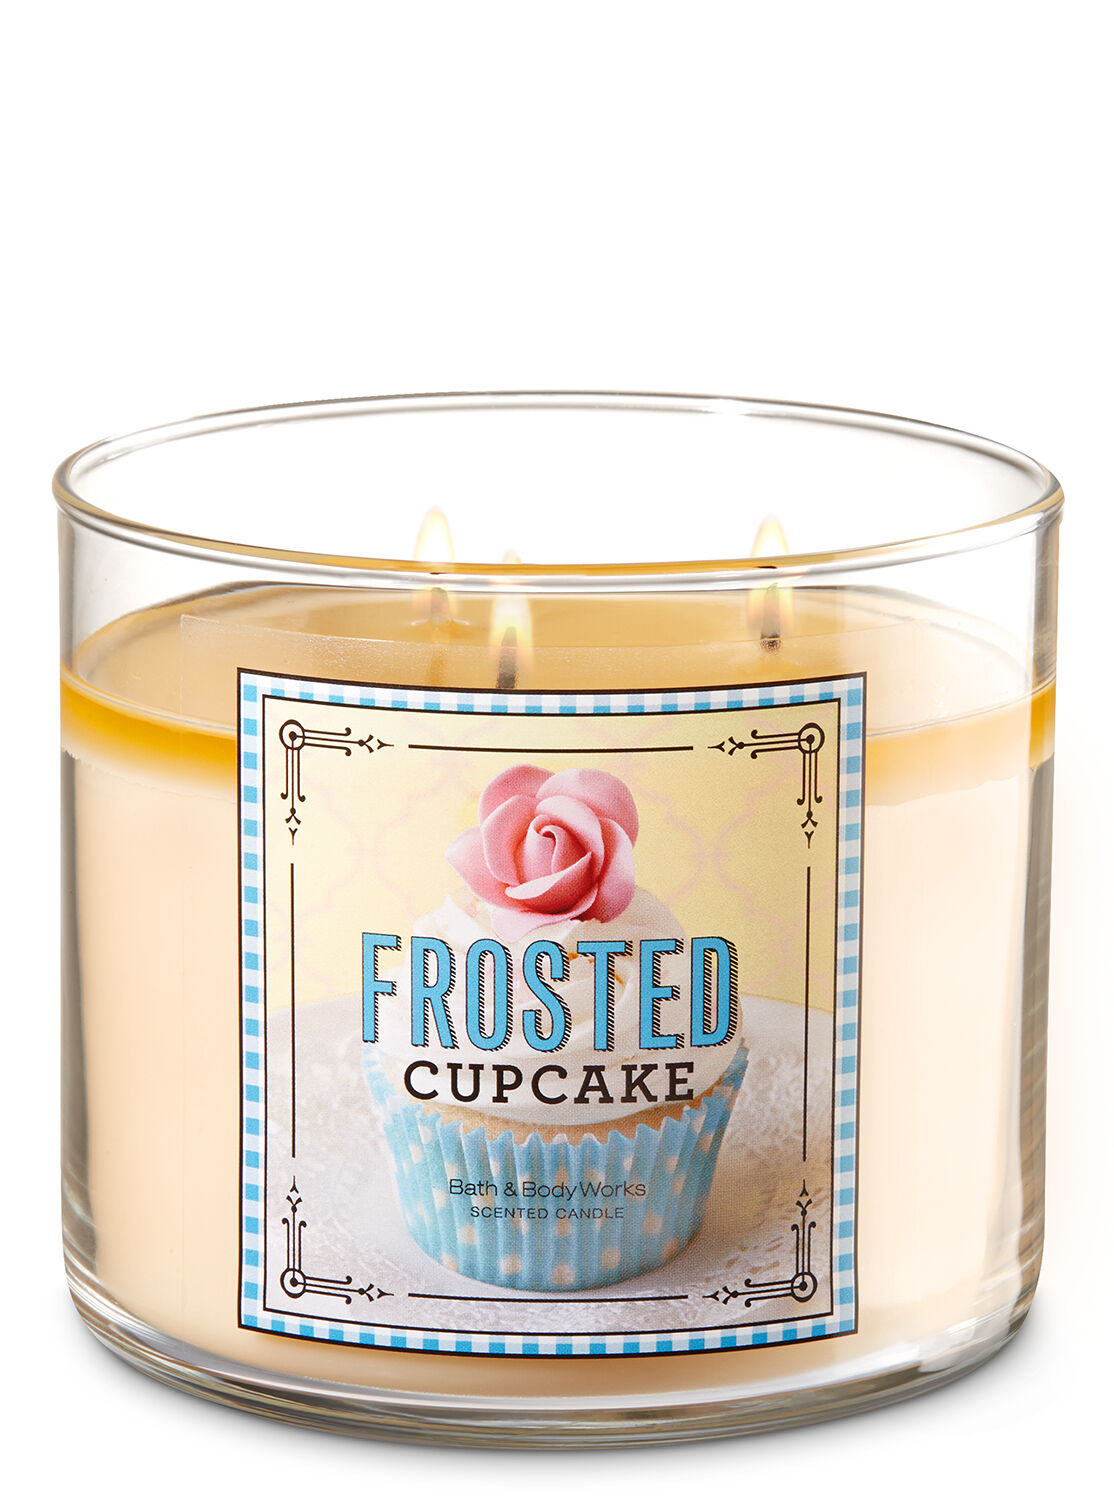 Frosted Cupcake 3 Wick Candles